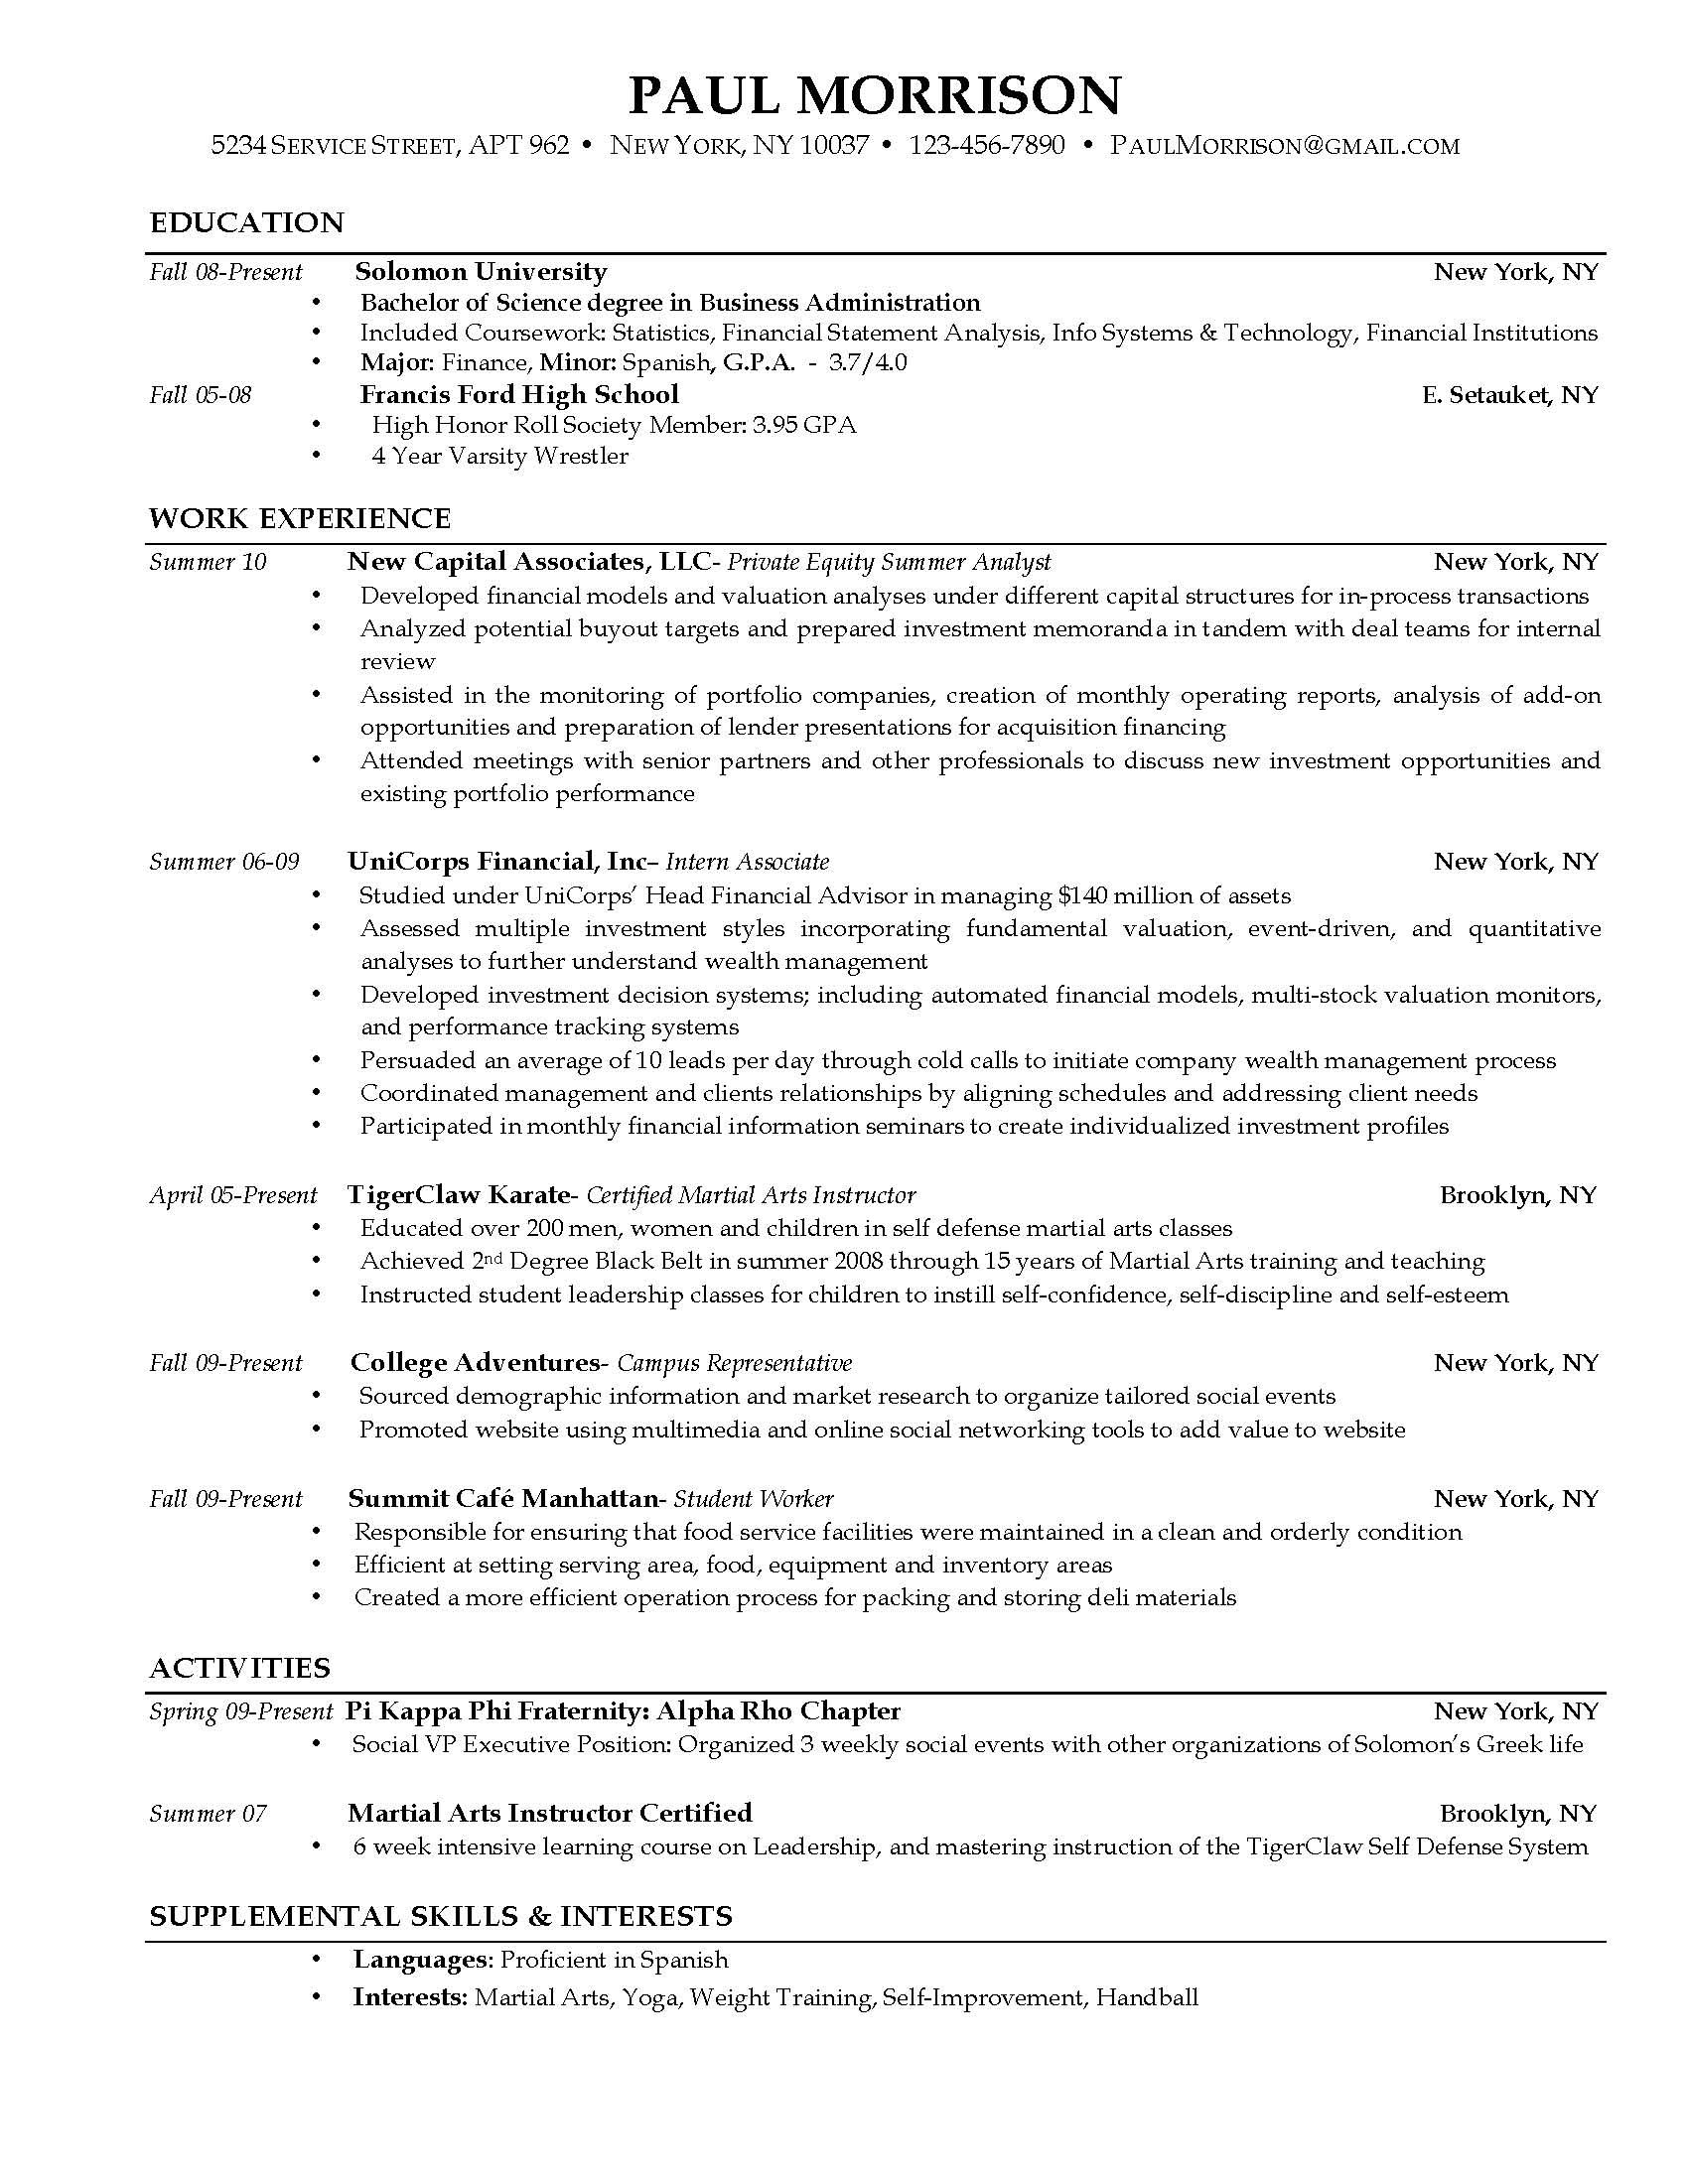 Resume Templates For College Students Here Example Resume Current College Student Sample Job Tips Skills